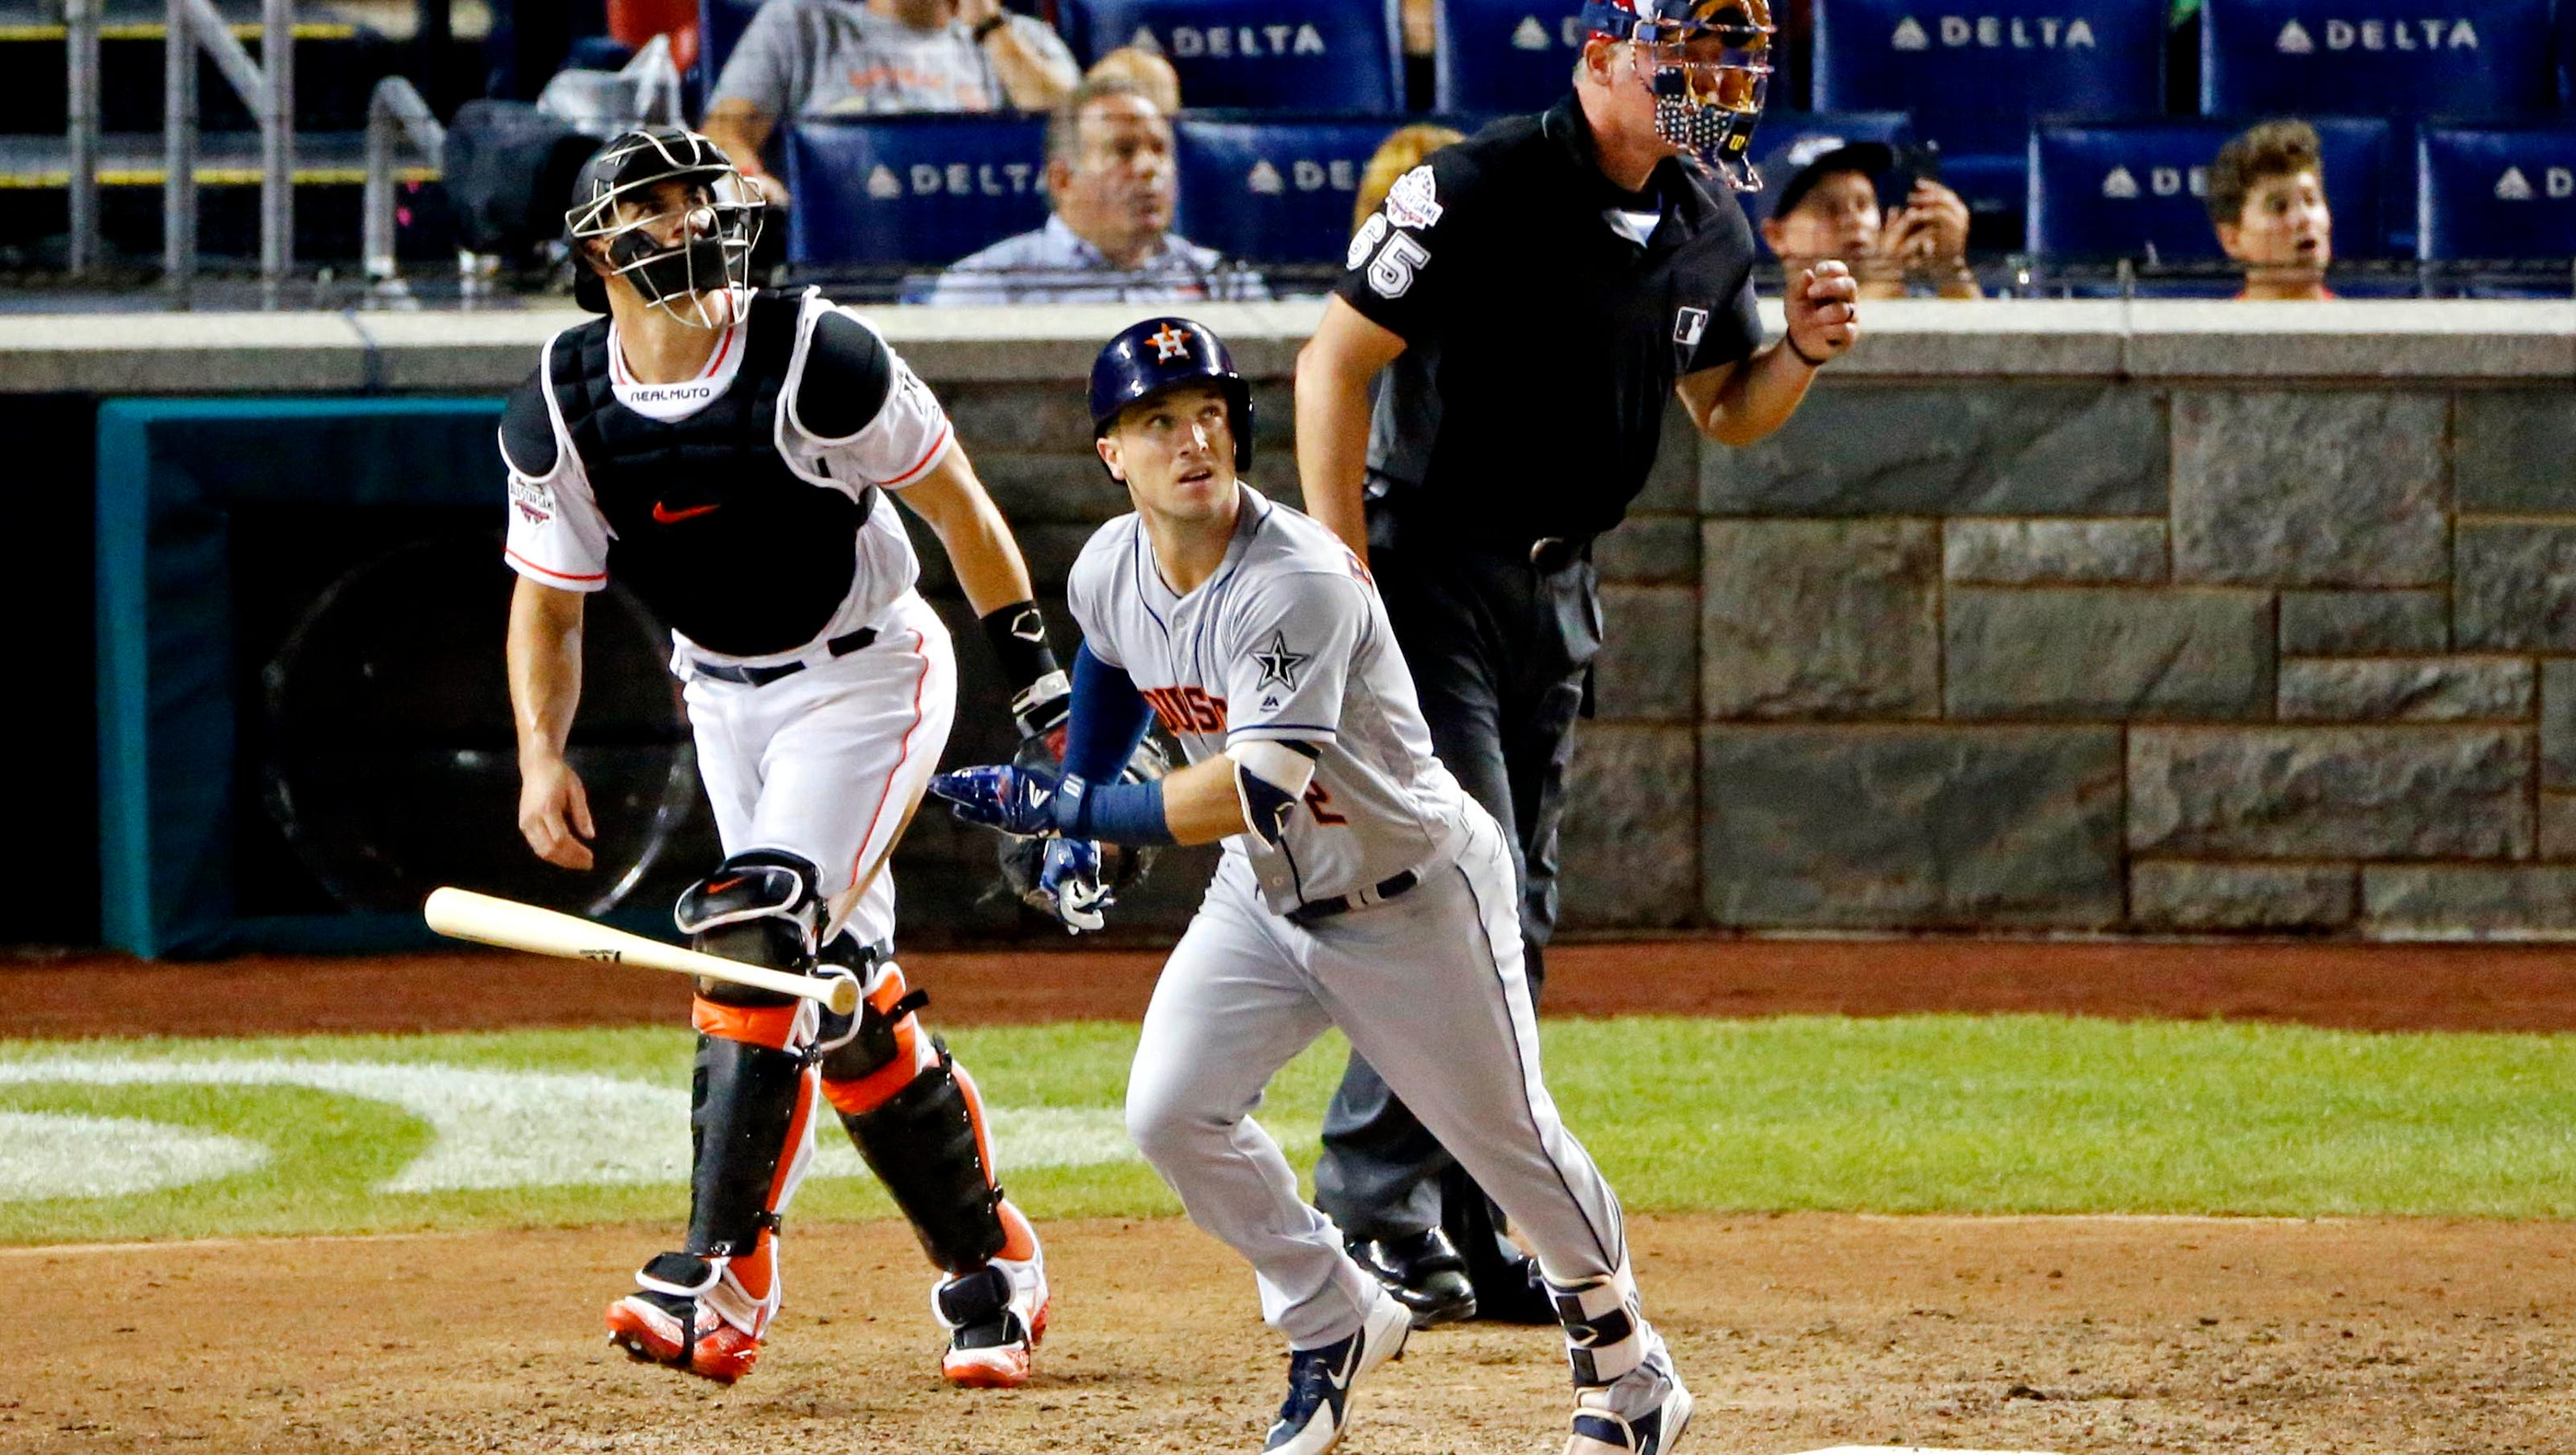 Mlb All Star Game Al Prevails In Extras Game Sets Record With  Homers